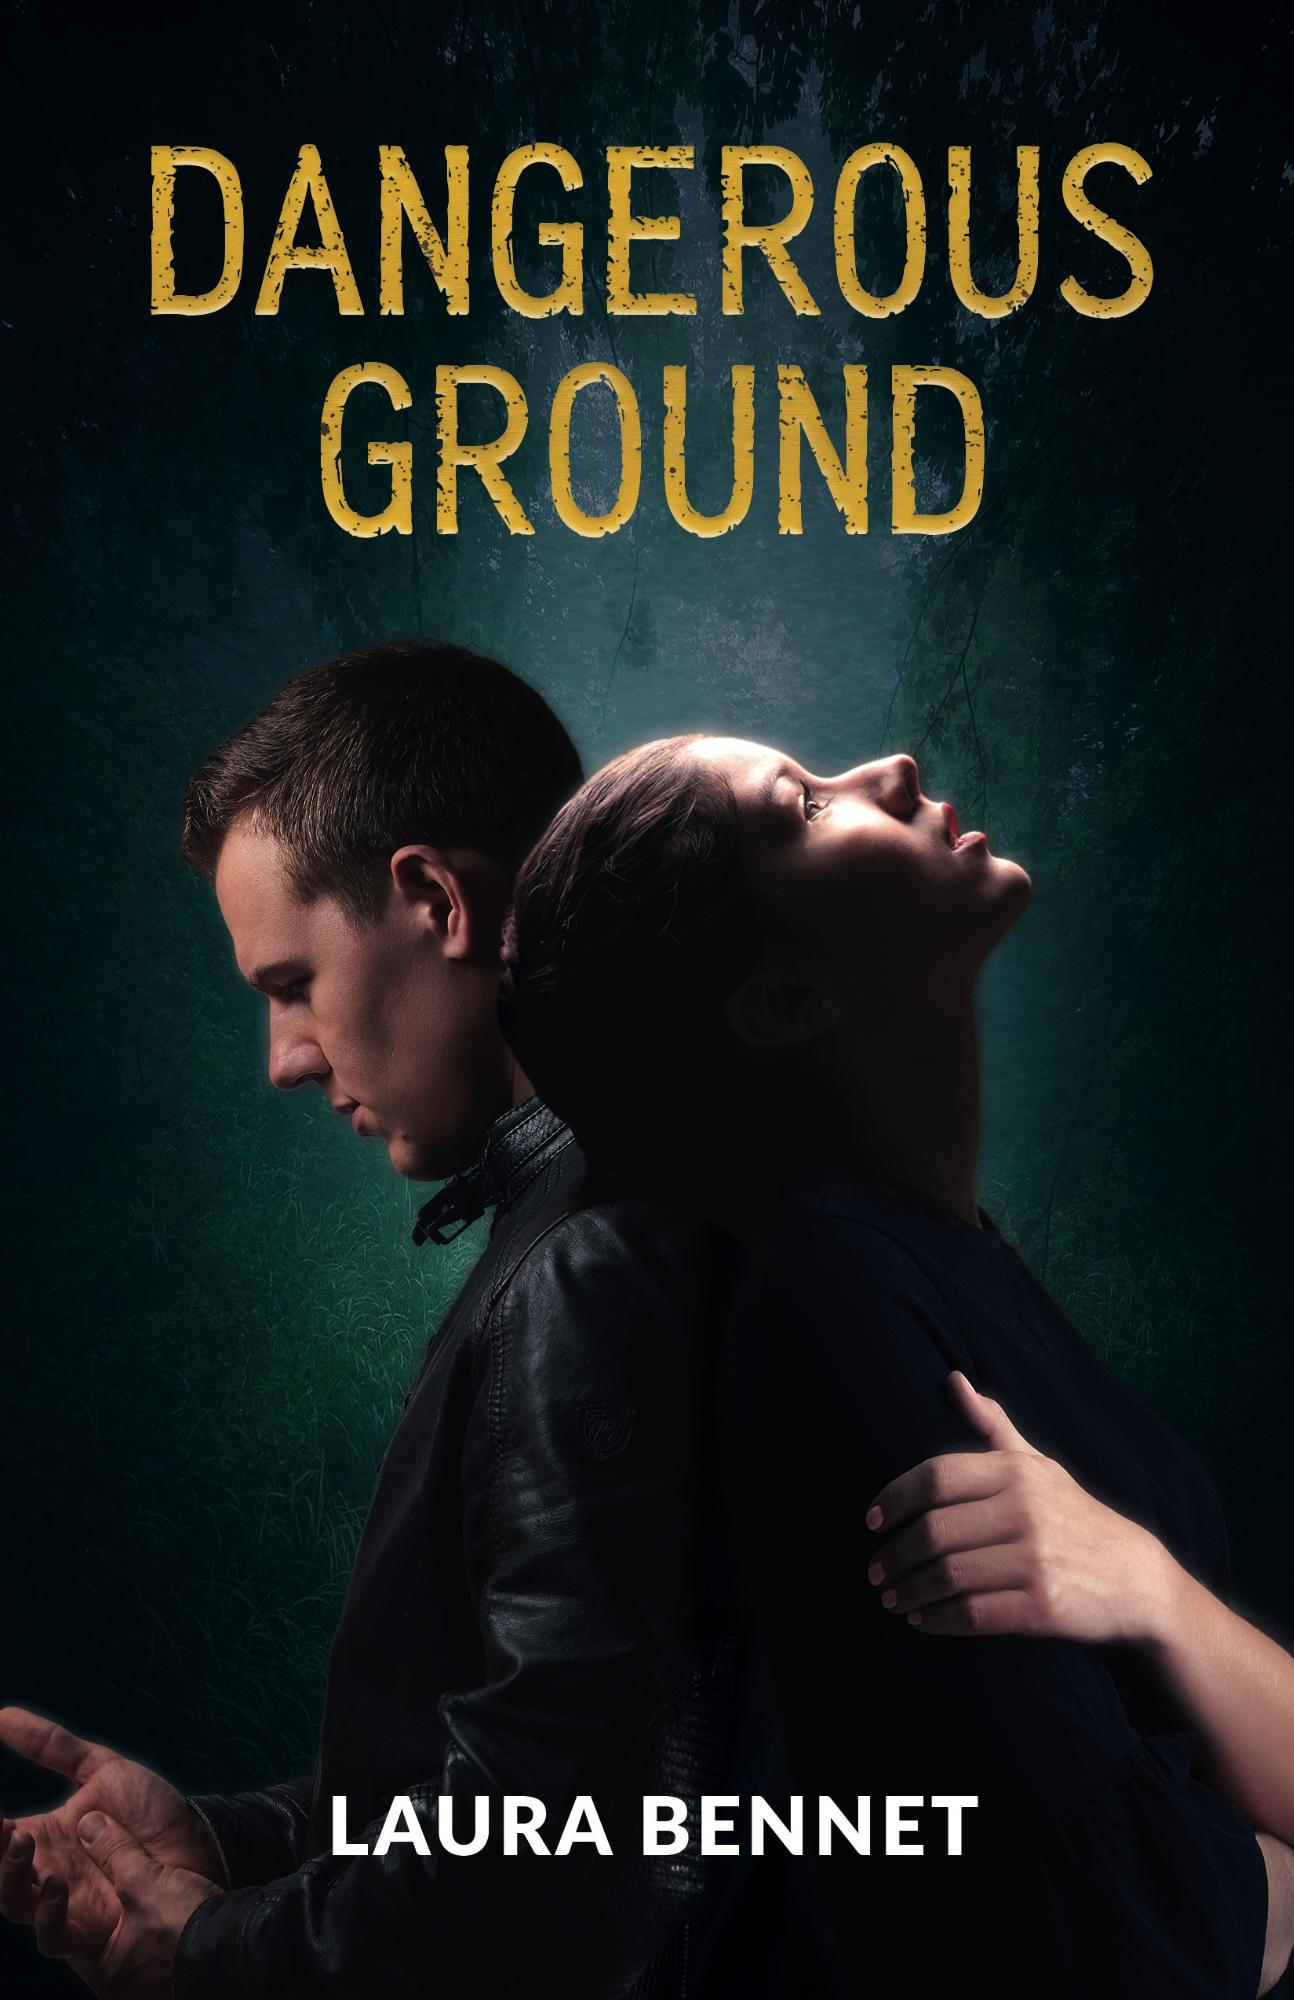 Dangerous_Ground_Cover_for_Kindle.jpg